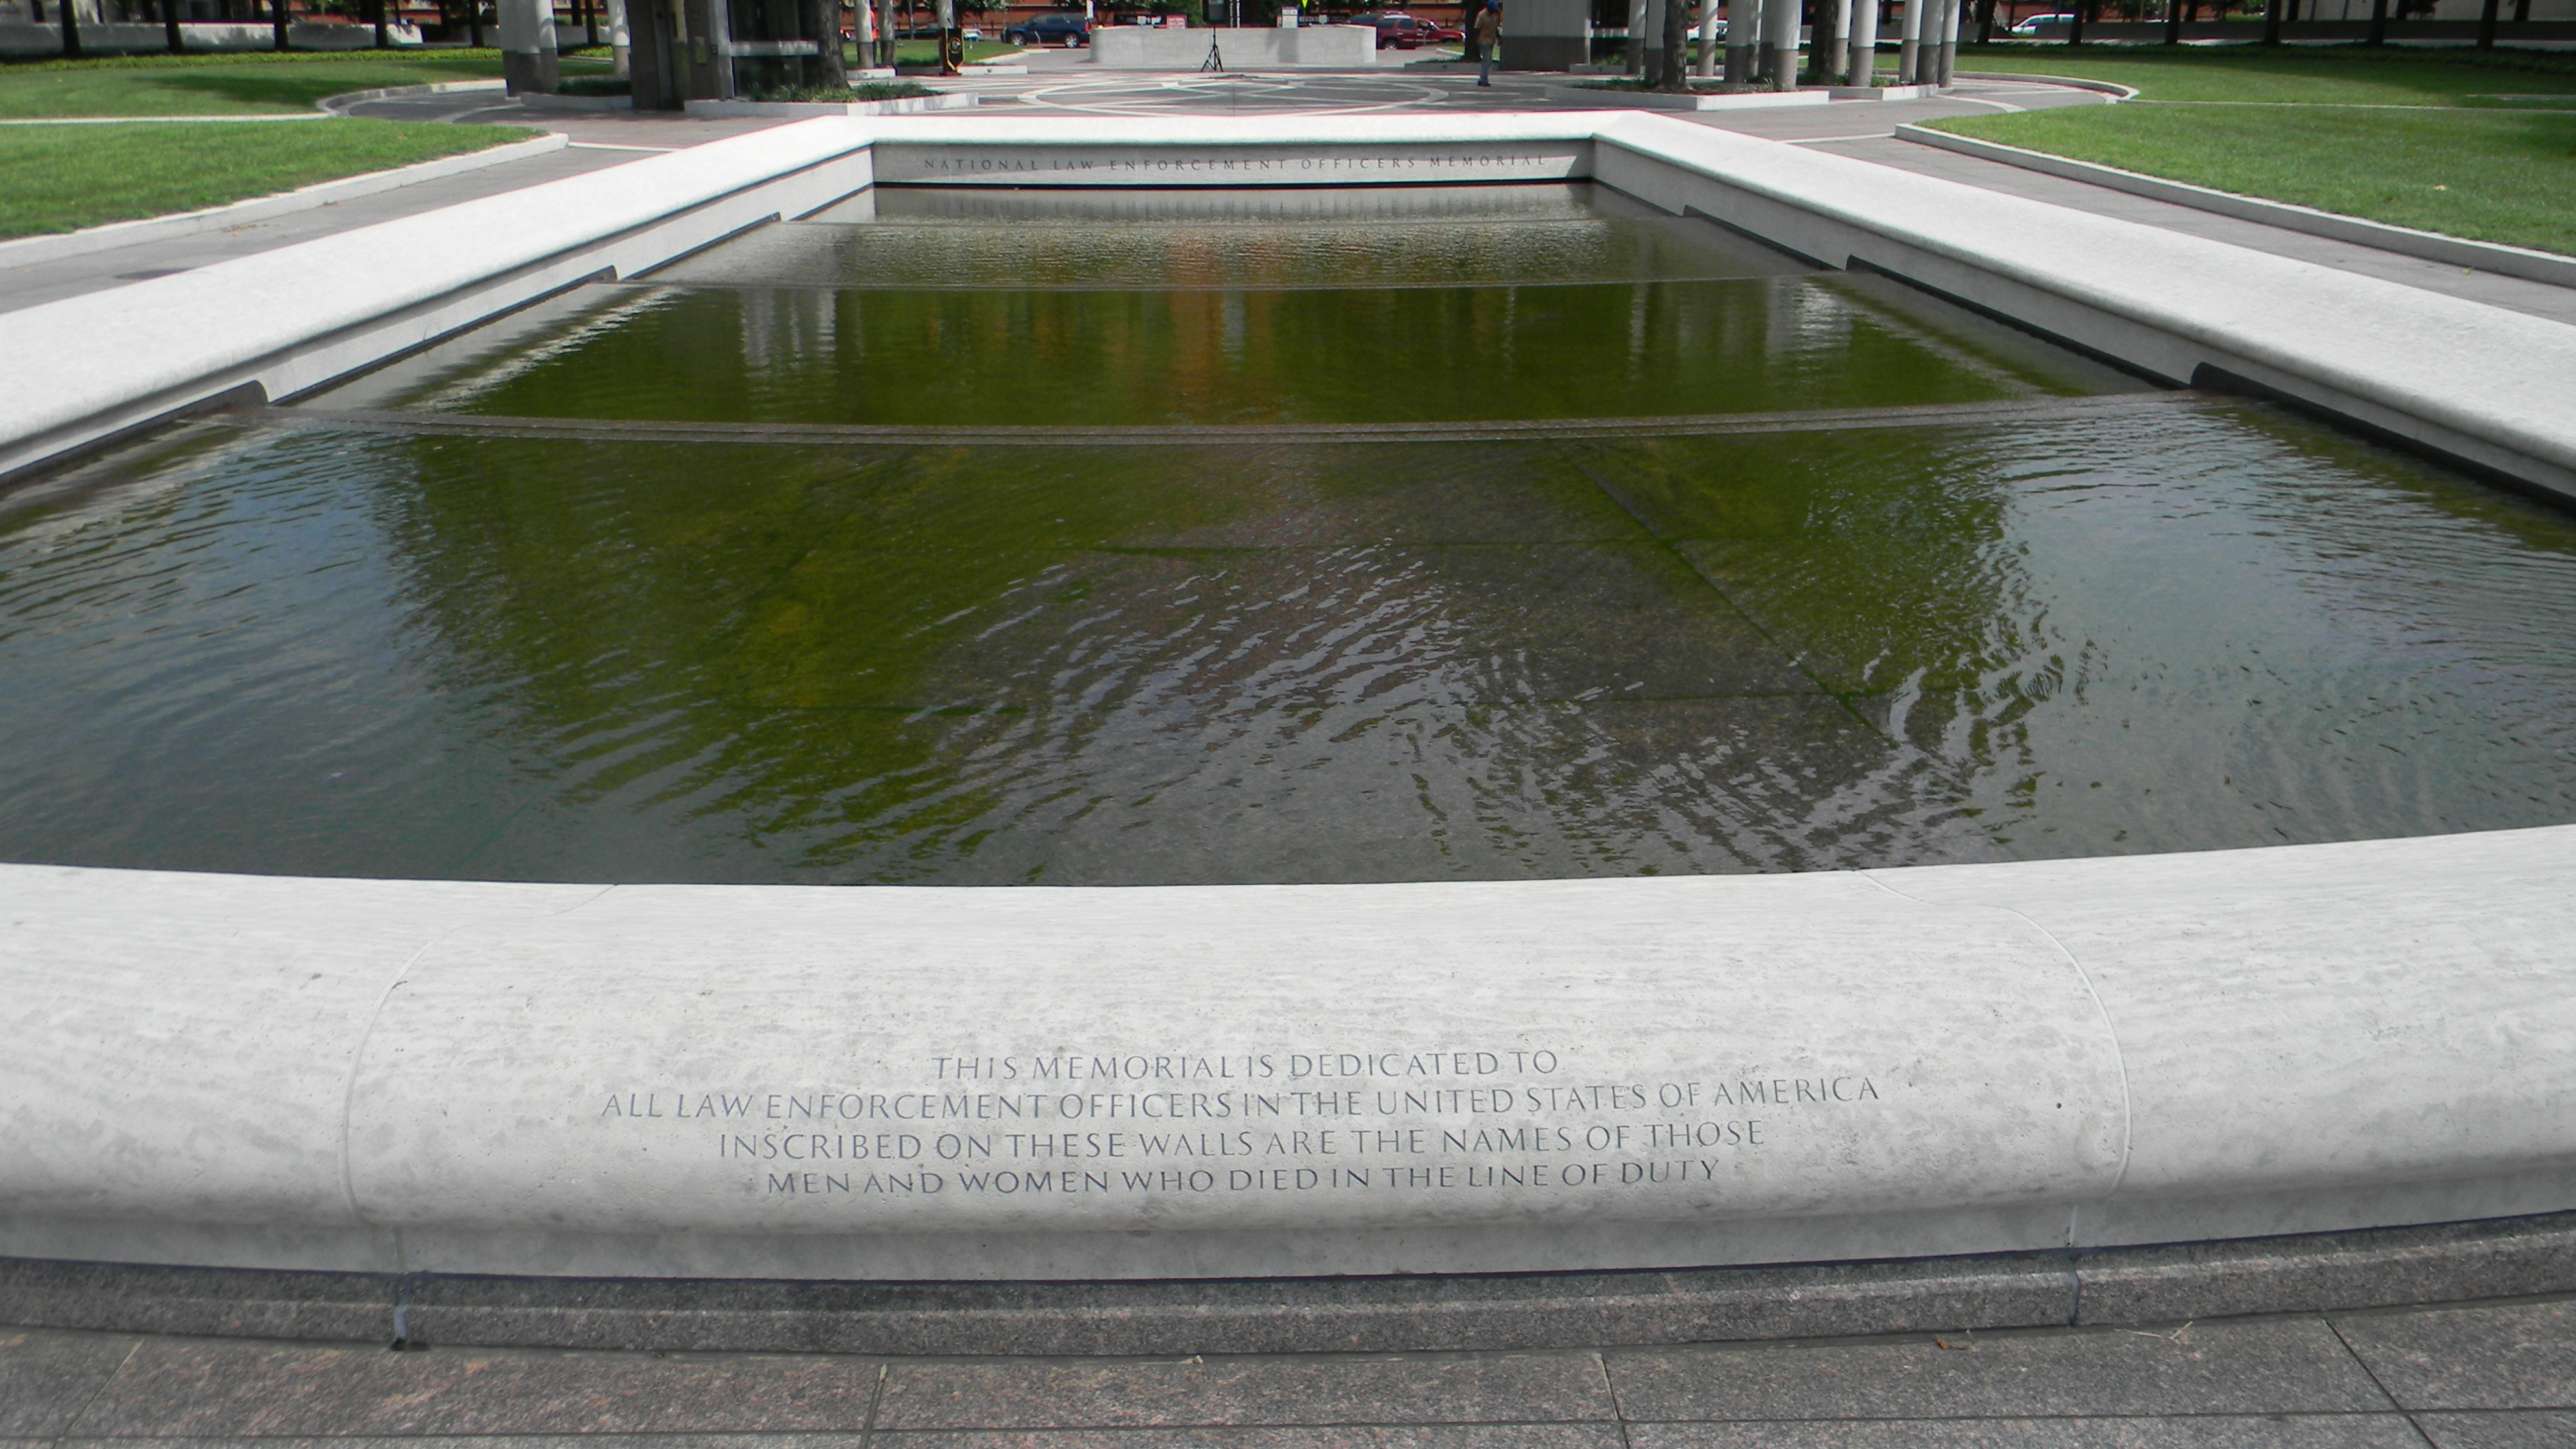 View of the Memorial